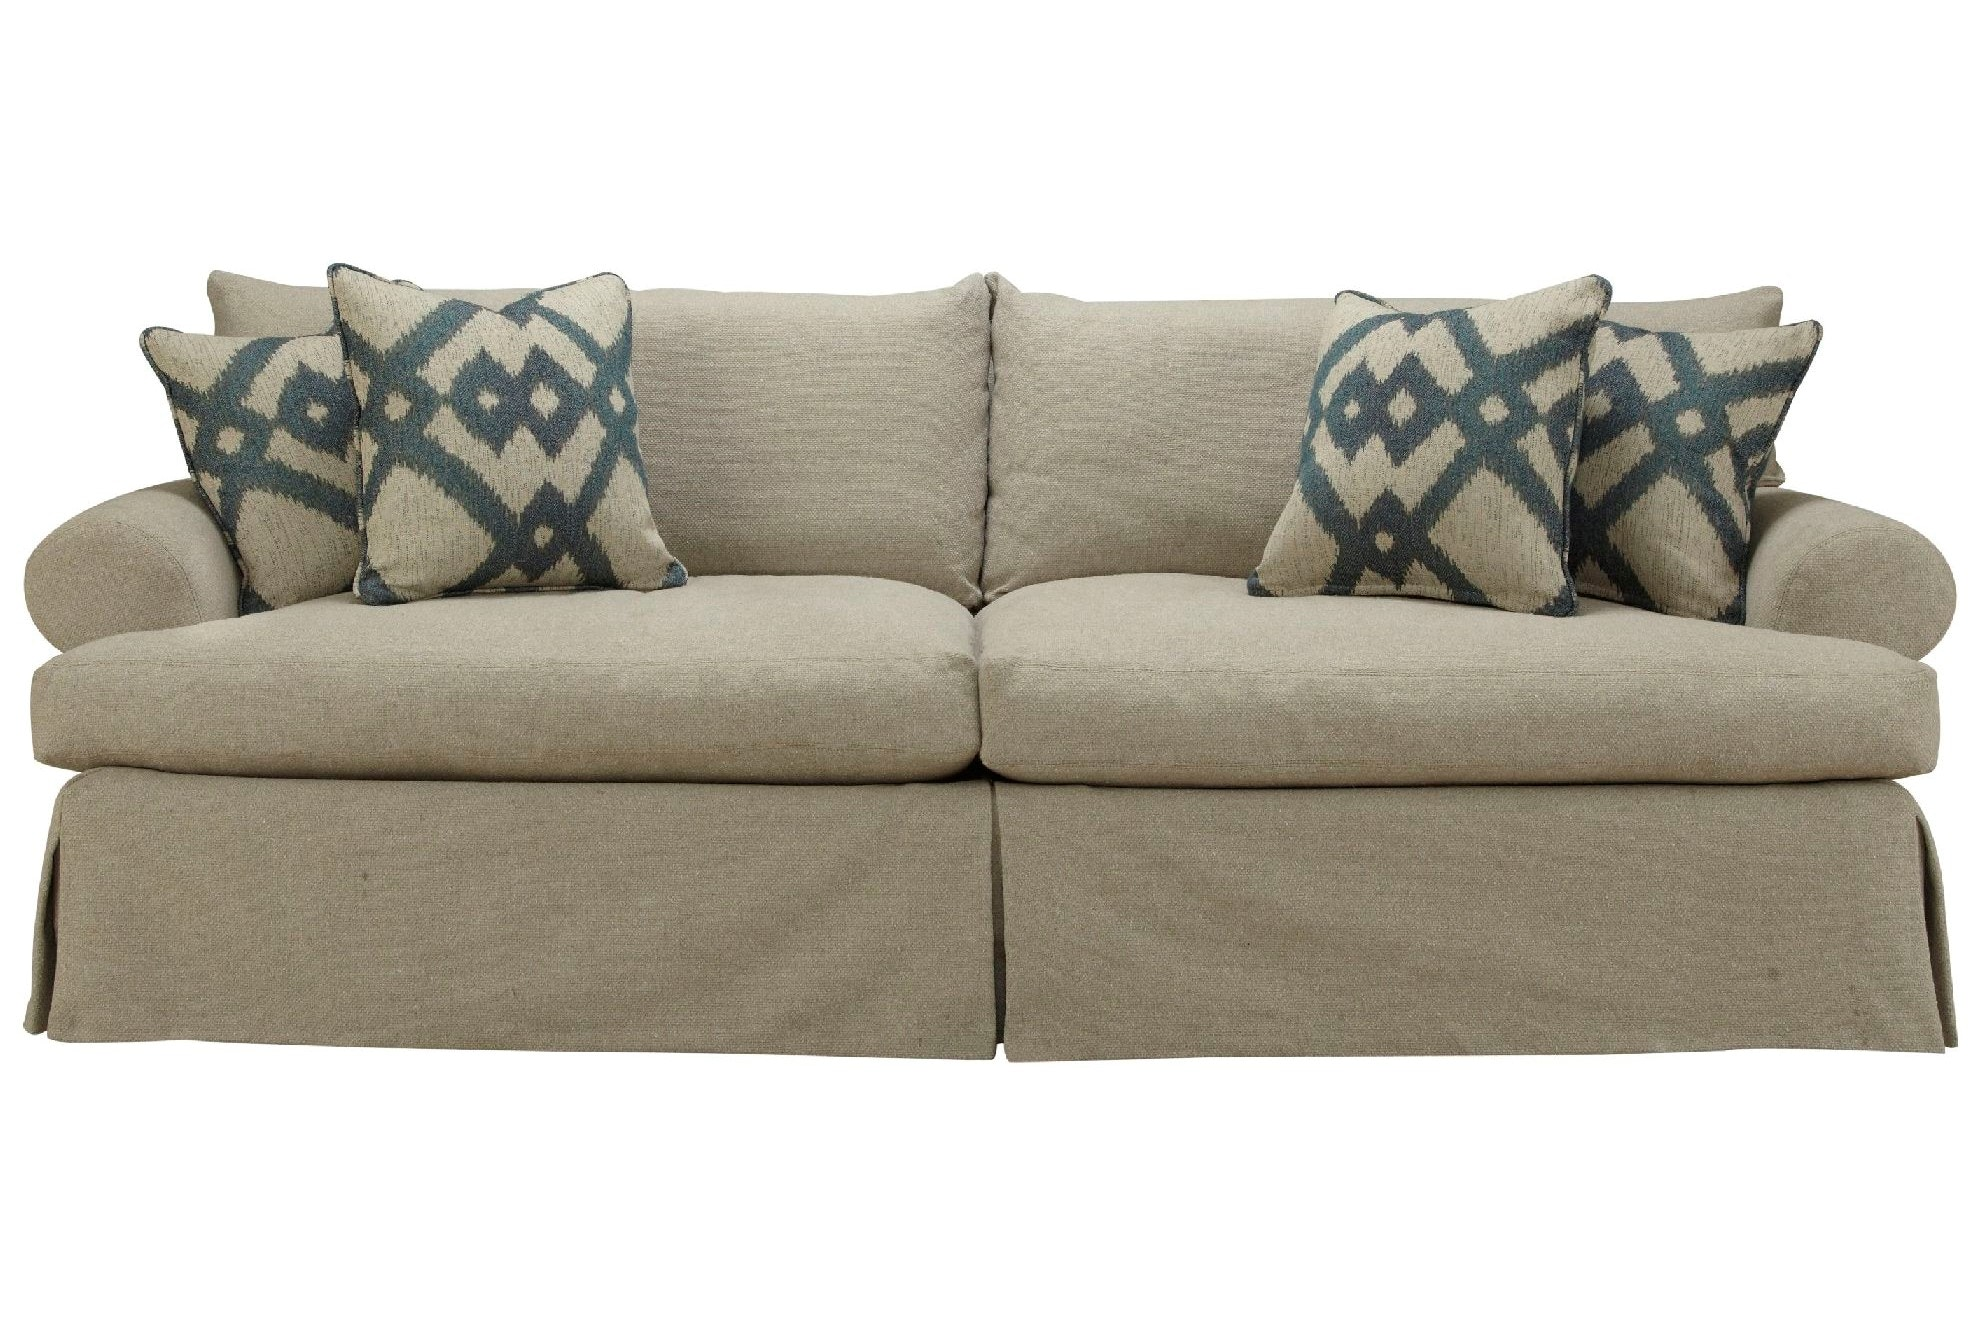 Wes 1 Bishop Sofa WES25031 From Walter E. Smithe Furniture + Design